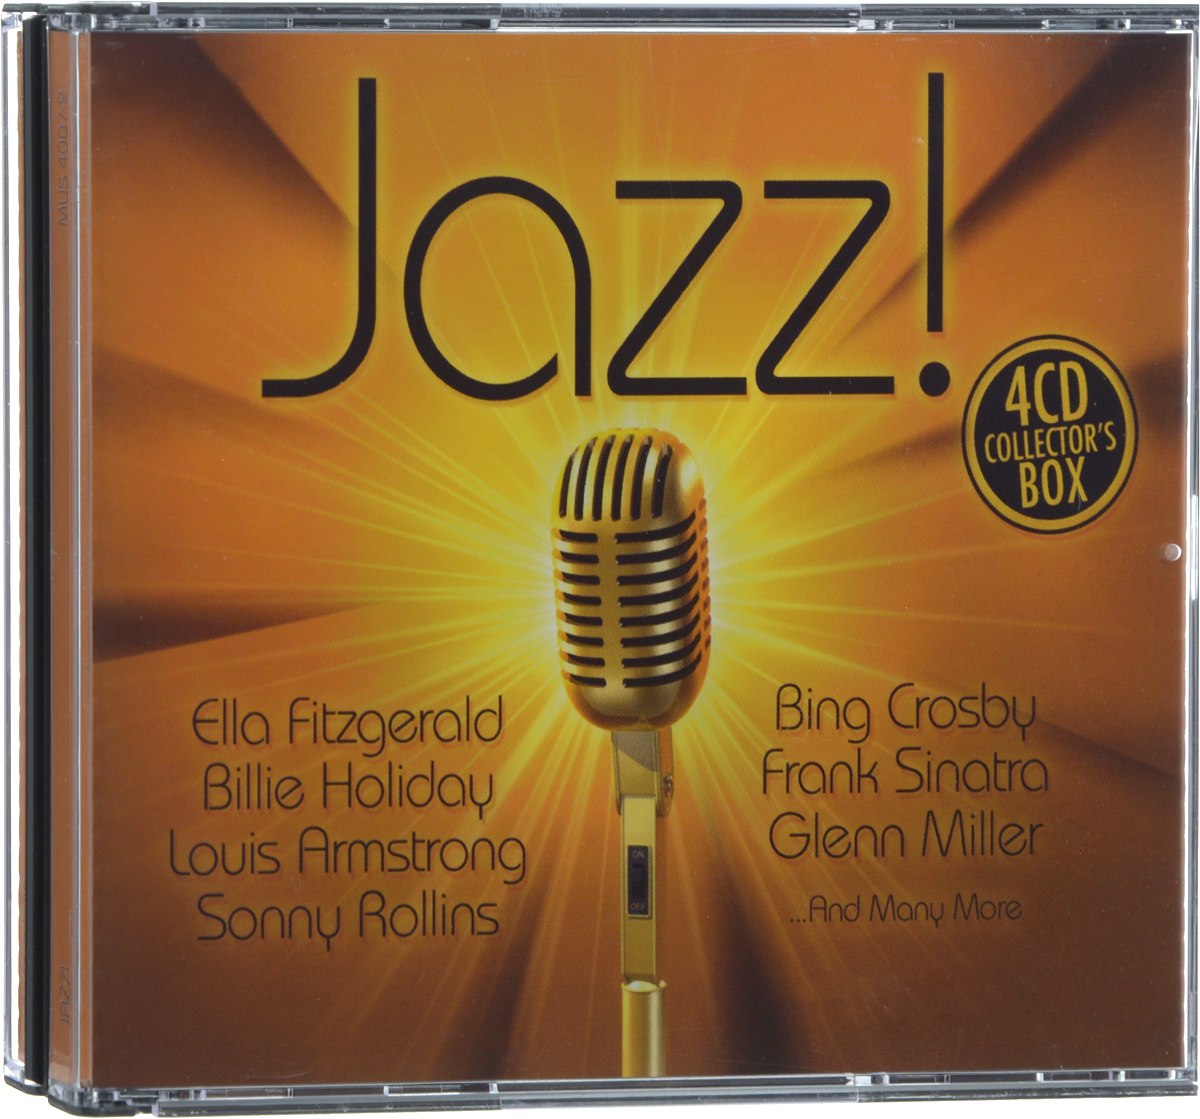 Бенни Гудман,The Glenn Miller Orchestra,The Count Basie Orchestra,Coleman Hawkins All Star Octet,Duke Ellington And His Orchestra,Les Brown And His Band Of Renown,Isham Jones And His Orchestra,Teddy Powell And His Orchestra,Harry James & His Orchestra,Woody Herman & His Orchestra,Джон Кангас,Элла Фитцжеральд,Билли Холидей,Бинг Кросби,Луис Джордан,Фрэнк Синатра,Луи Прима,Джин Келли,Джуди Гарланд,Кэб Кэллоуэй,Каунт Бэйси Jazz! (4 CD) элла фитцжеральд the count basie orchestra tommy flanagan trio оскар питерсон ray brown duo jazz at the santa monica civic 72 3 cd